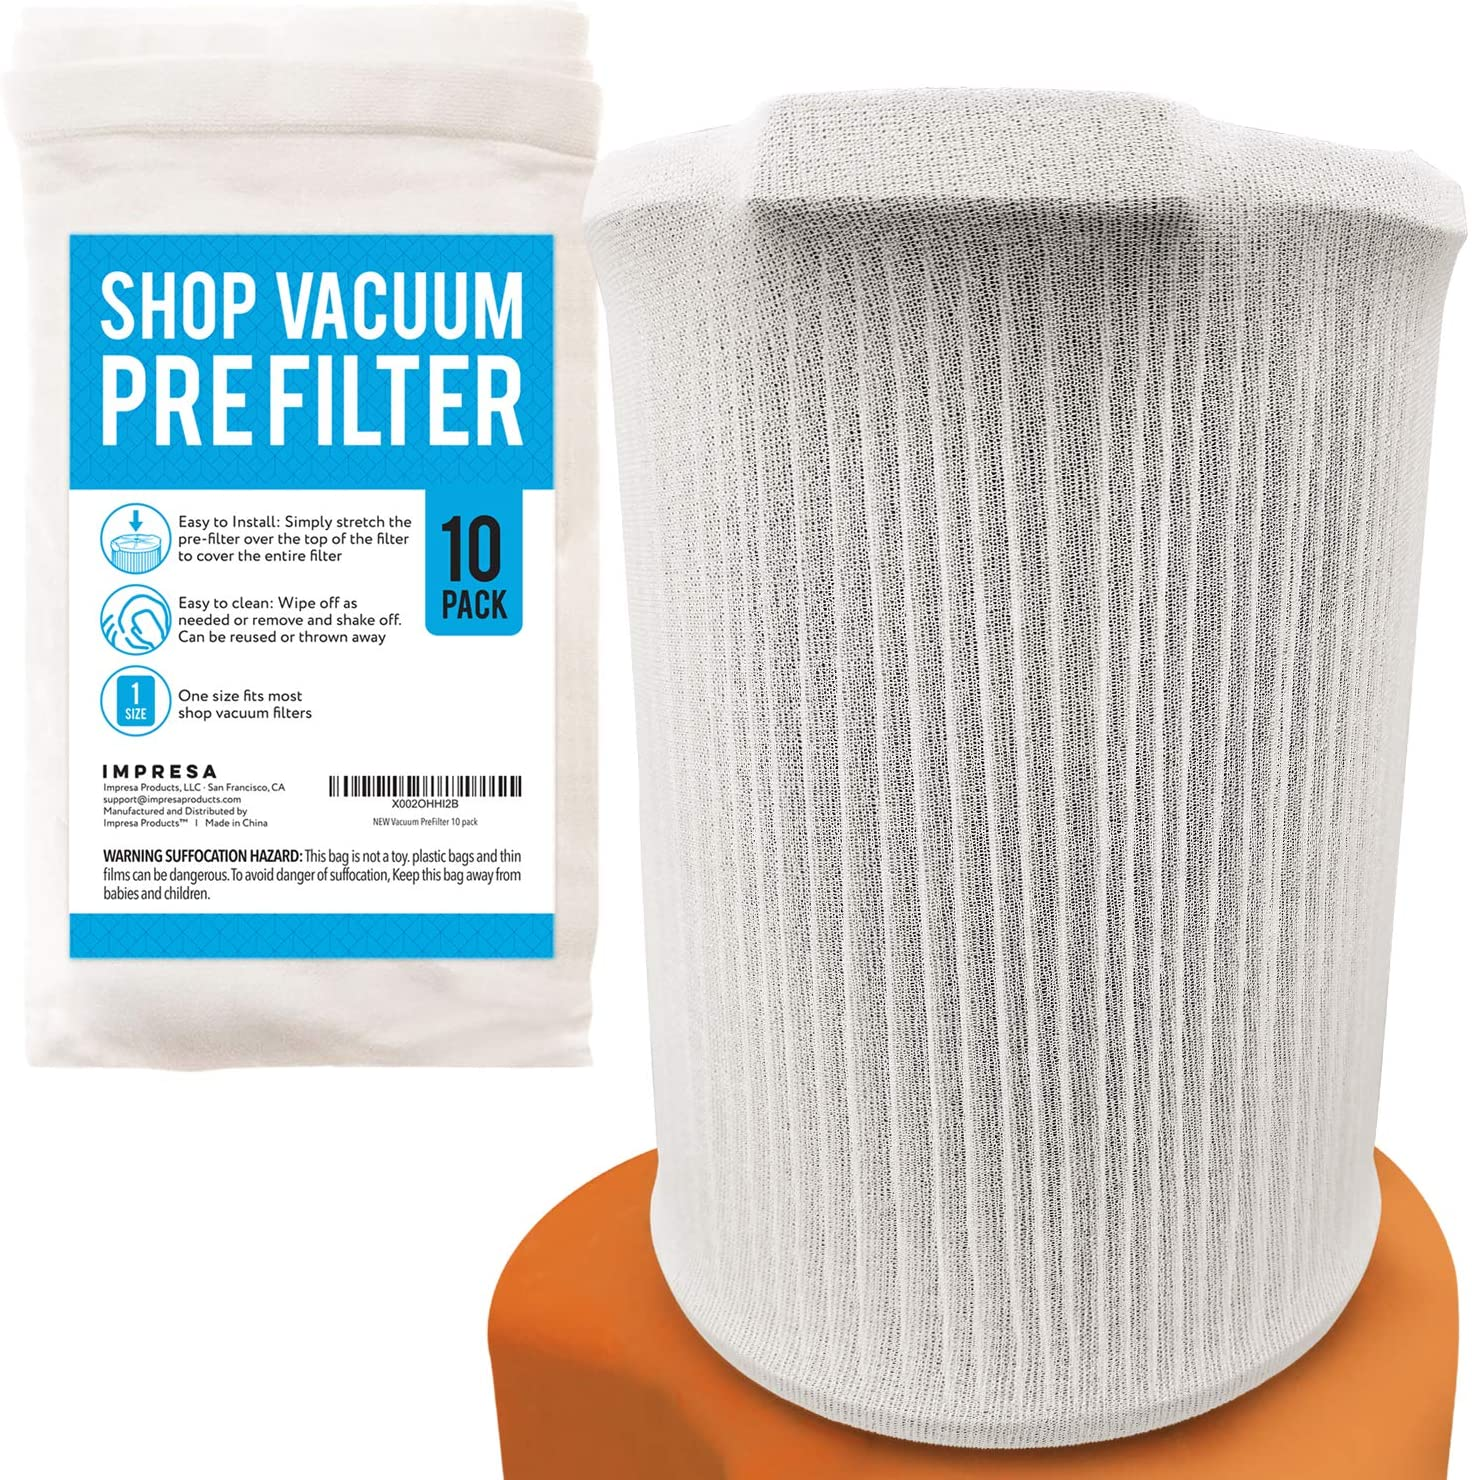 [10 Pack] Shop Vacuum Filter Cover To Reduce Dust Build Up - Reusable, Washable Vacuum Bags - Shopvac Prefilter, Fits Most Canister Vacuums